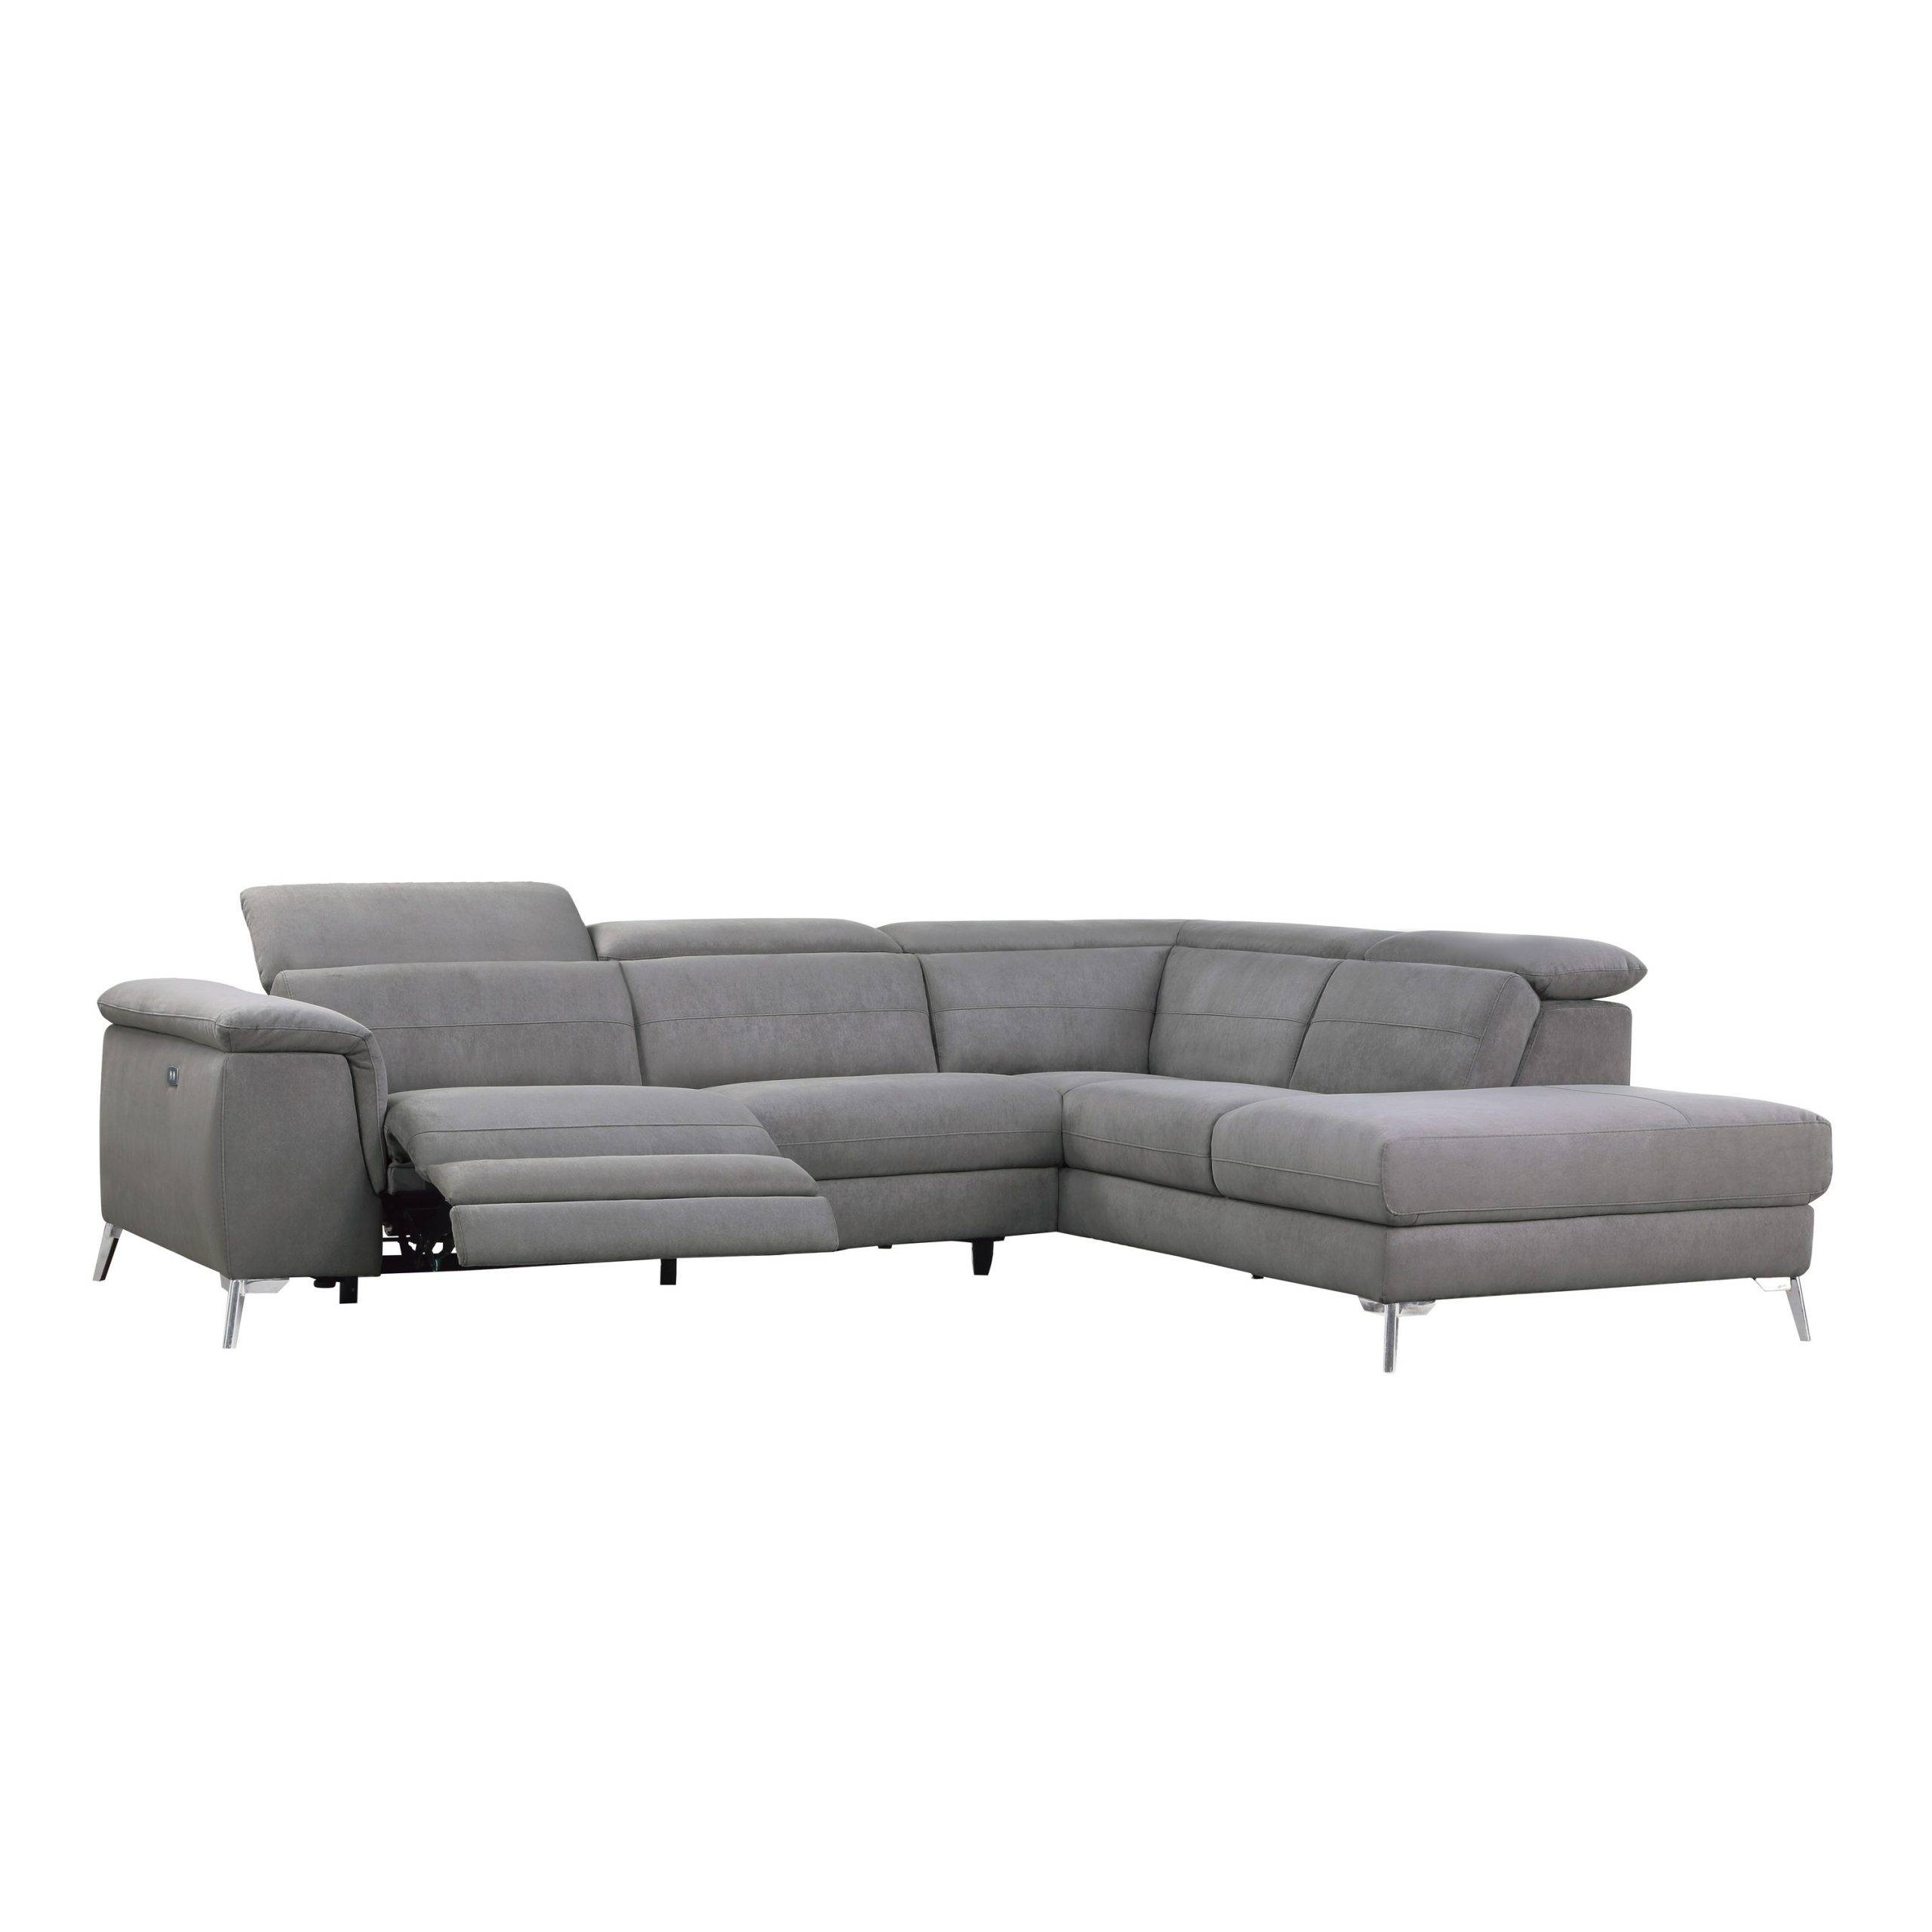 8256FBR cinque fabric recliner sectional